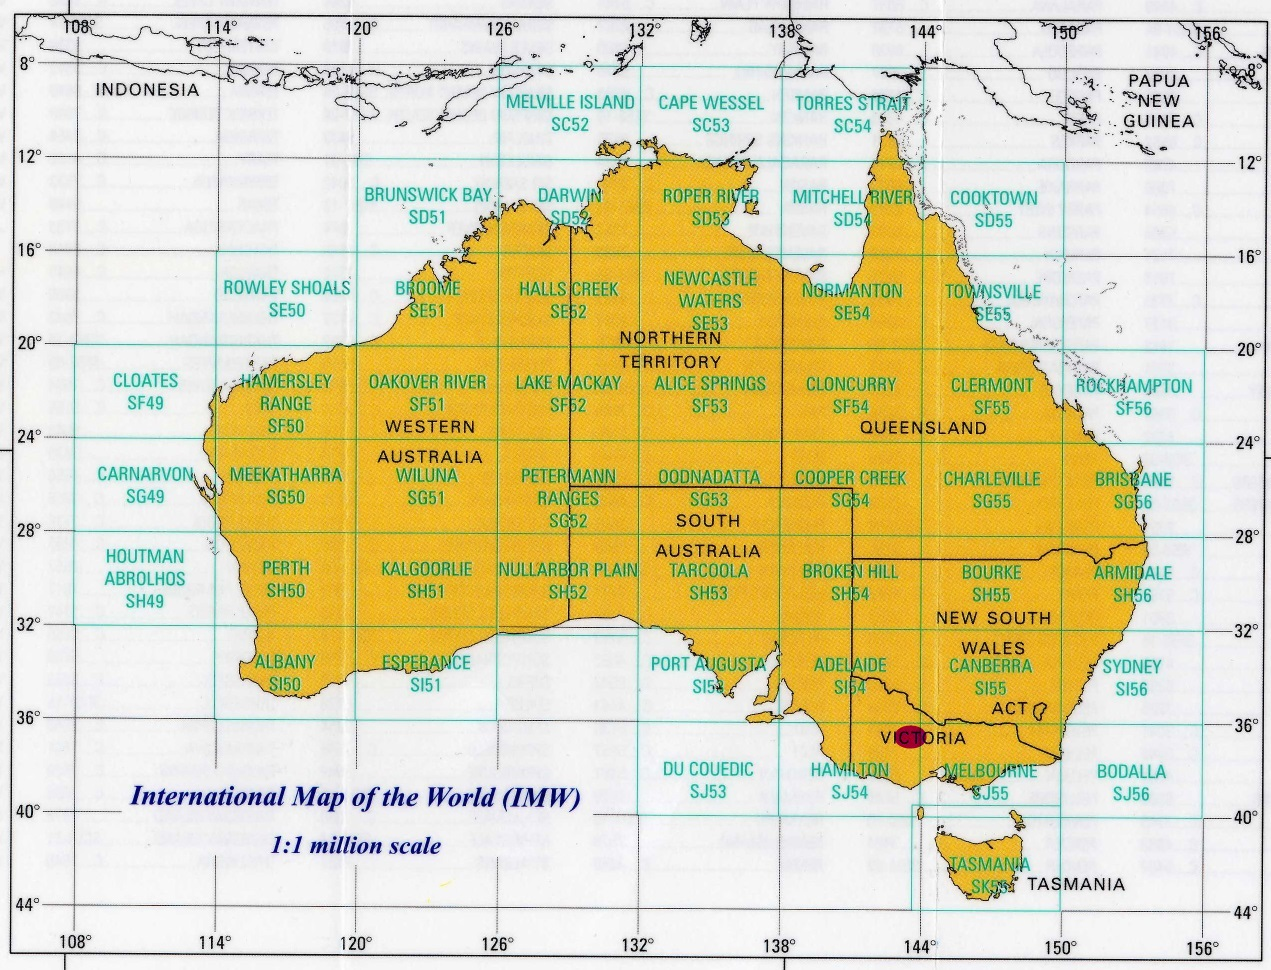 Planetary Vision Rss Satellite Temperature For Australia